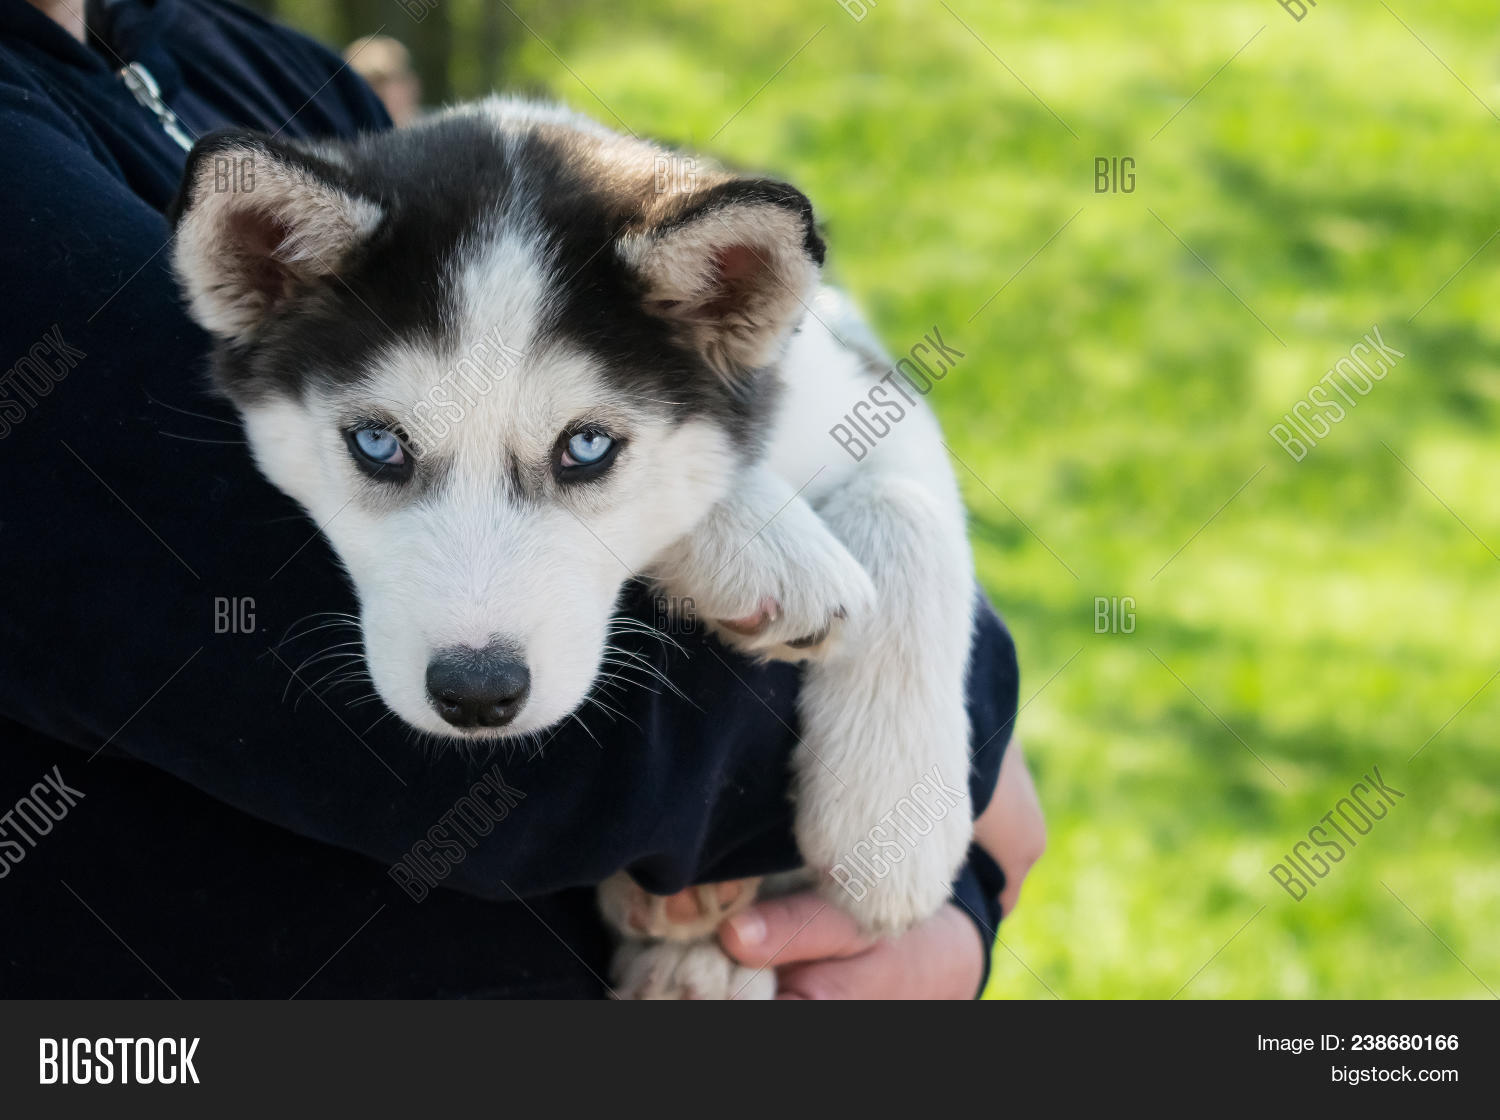 Cute Puppy Siberian Image Photo Free